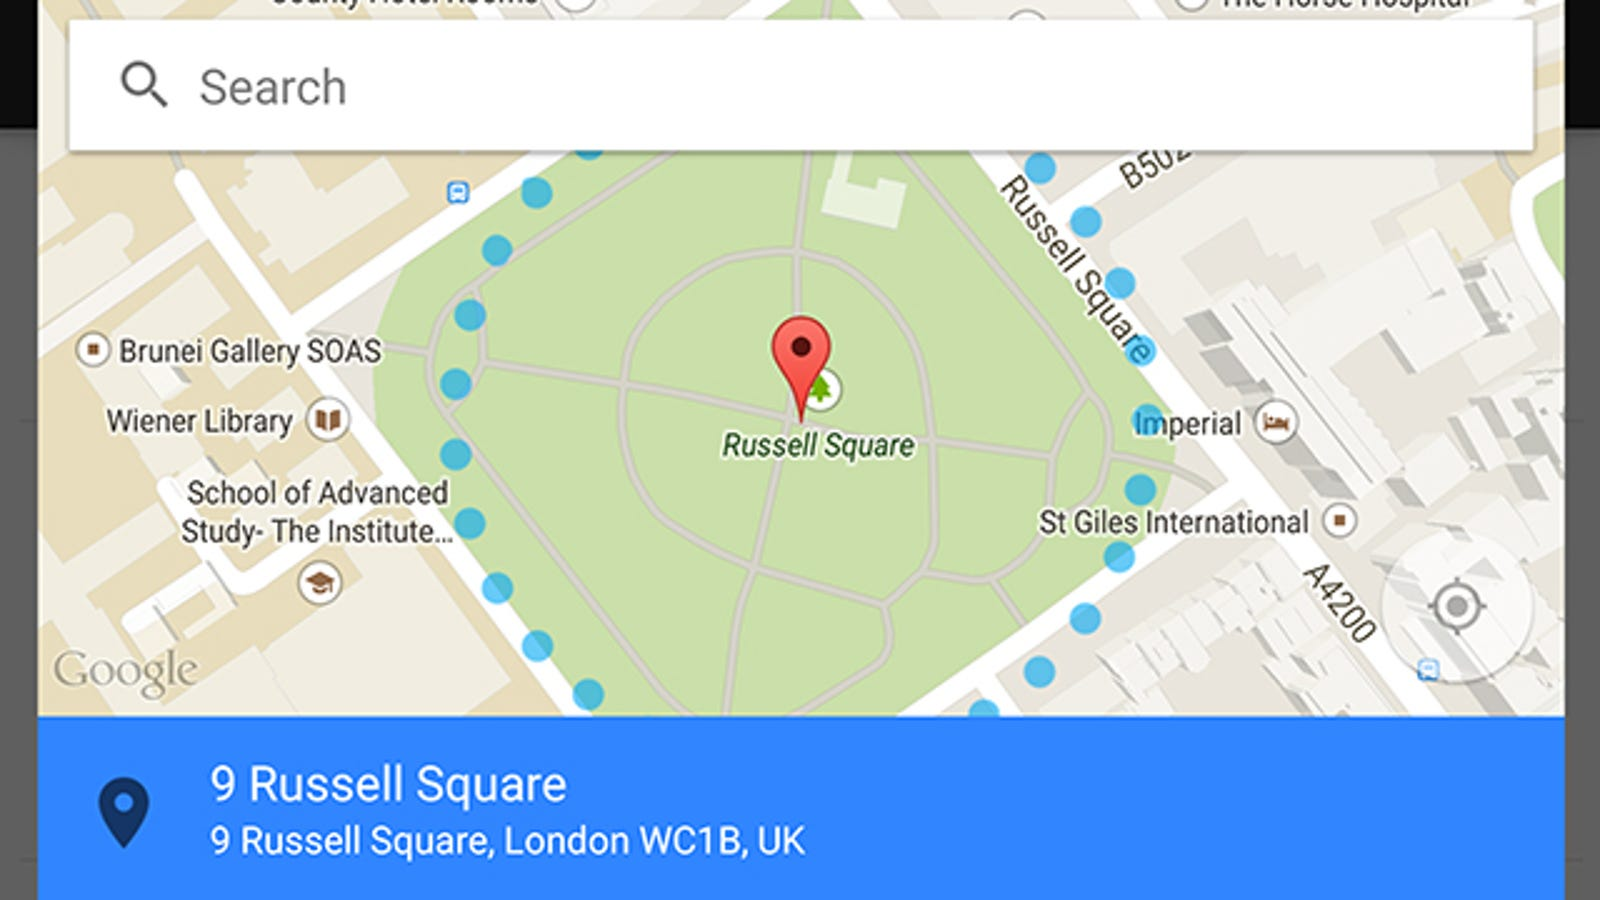 How to Set Up Trusted Locations in Android Lollipop